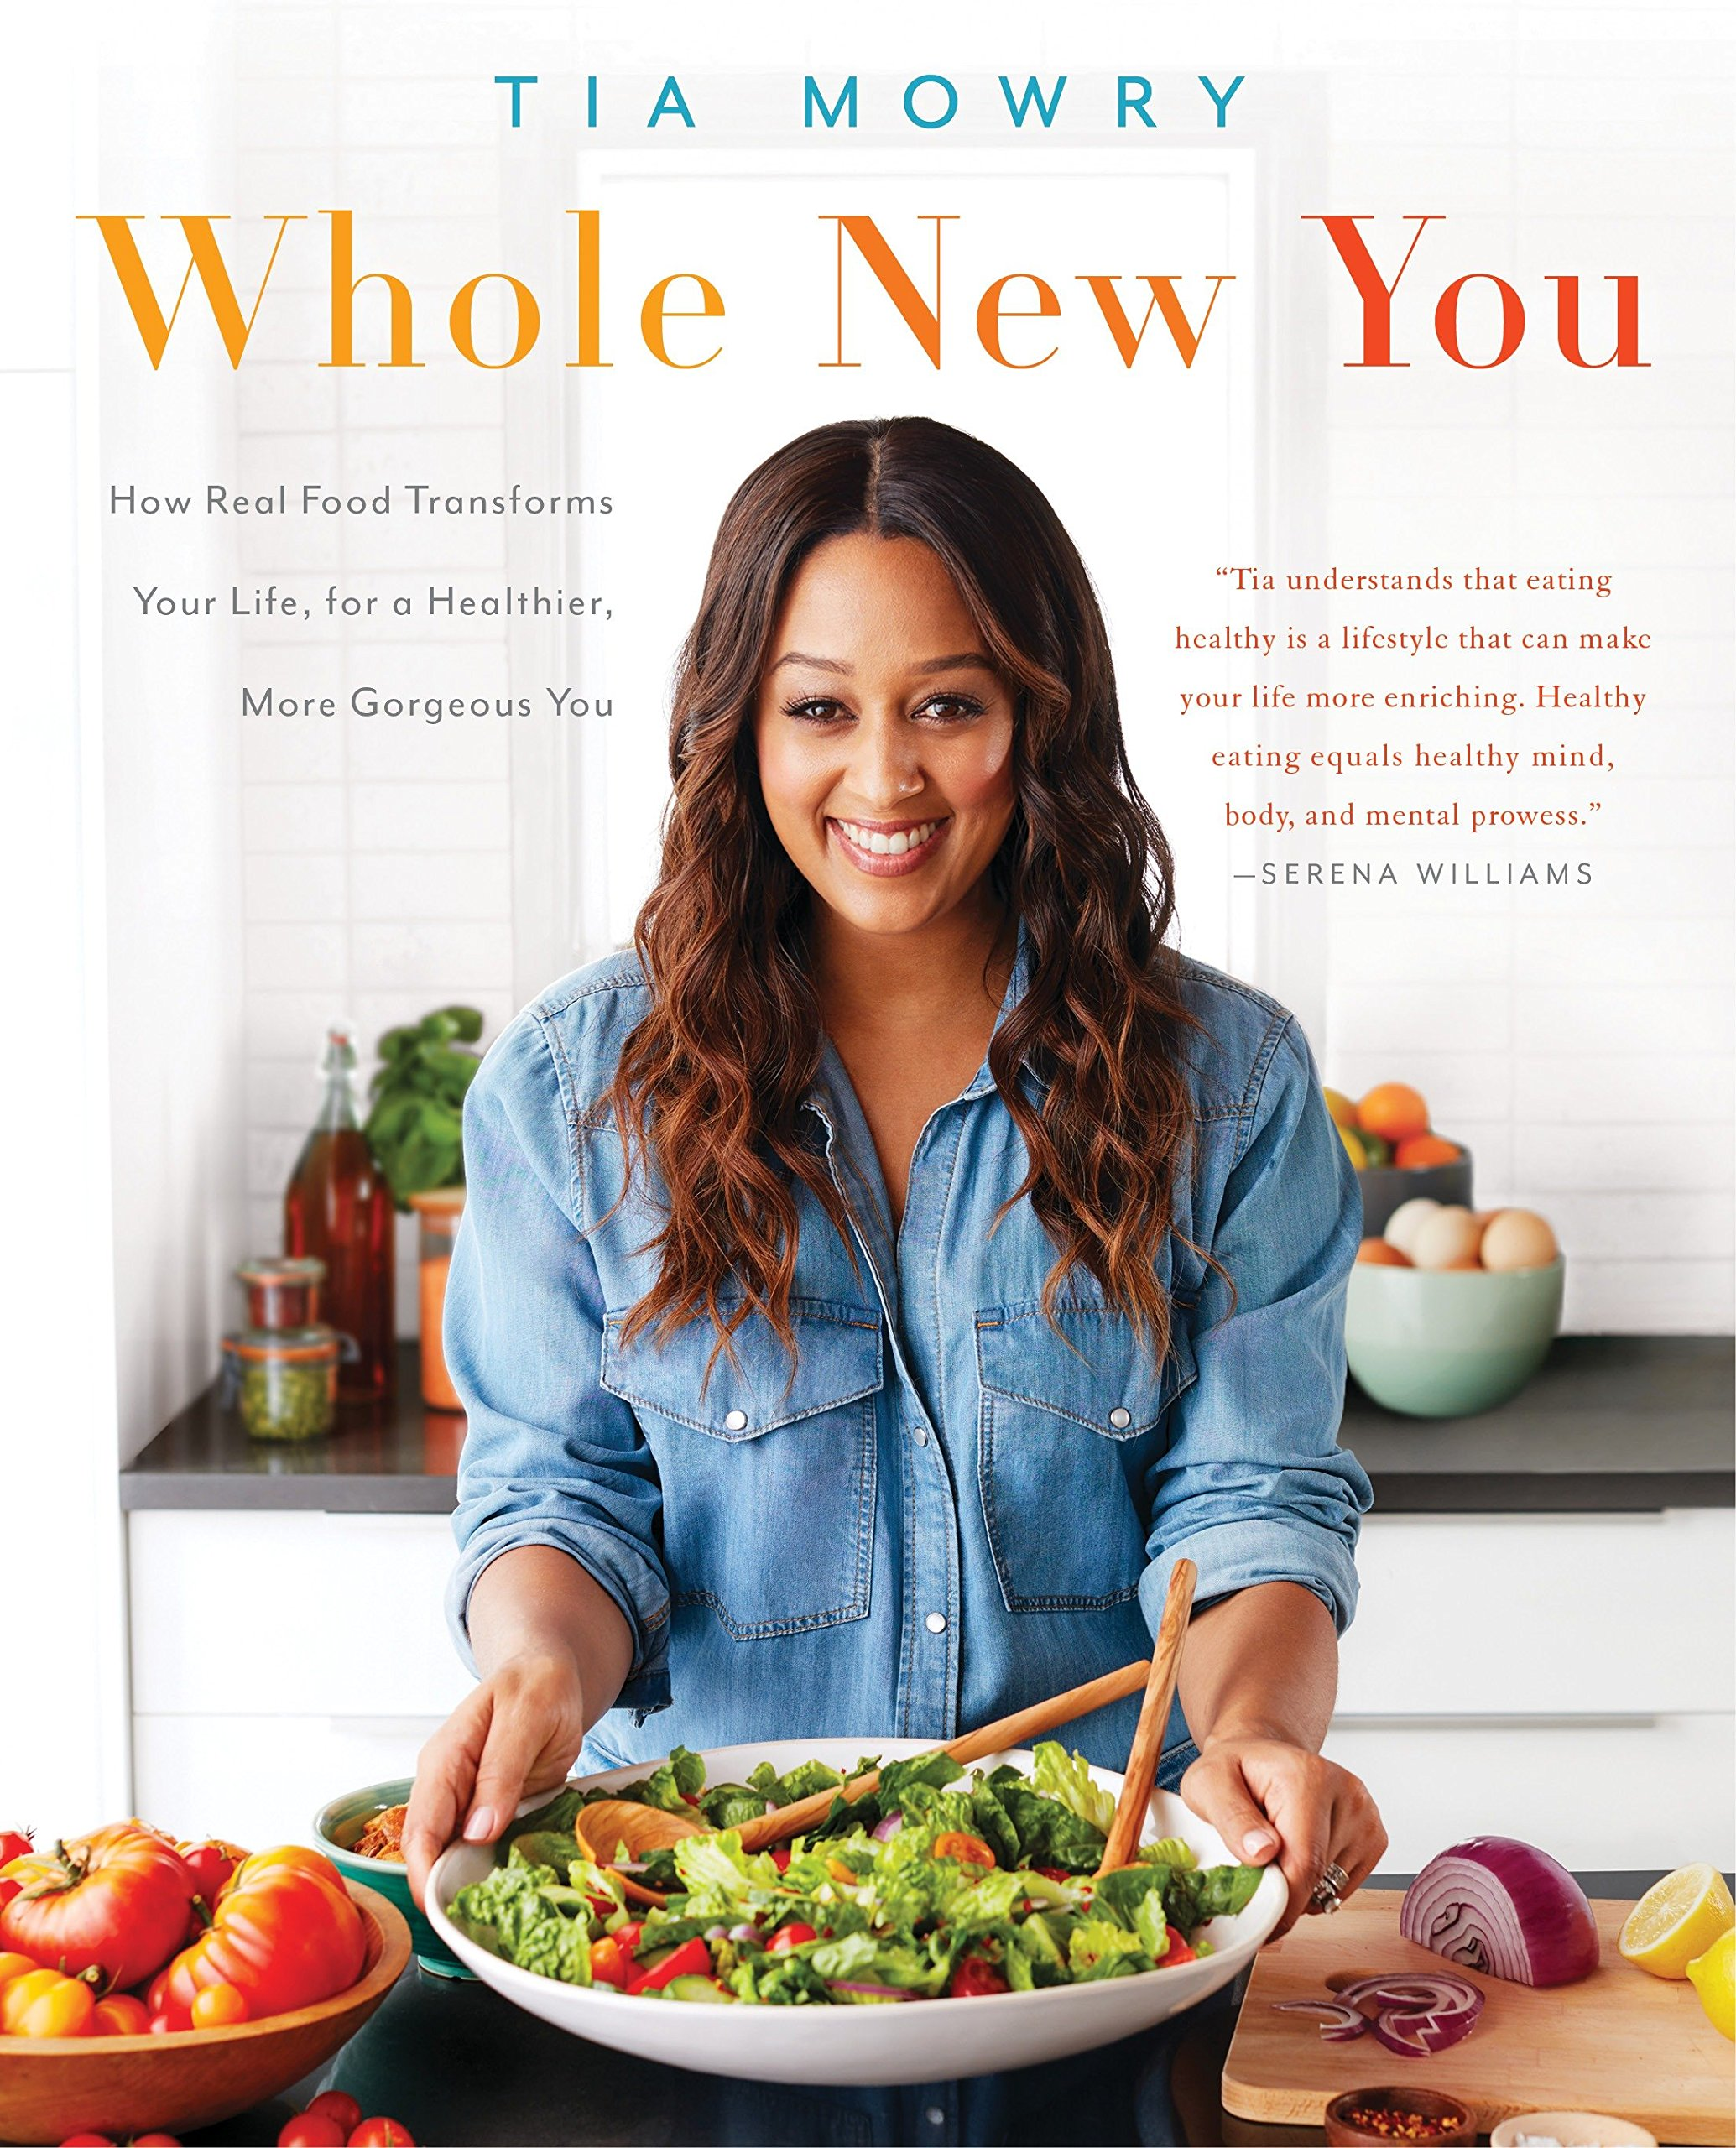 Image OfWhole New You: How Real Food Transforms Your Life, For A Healthier, More Gorgeous You: A Cookbook